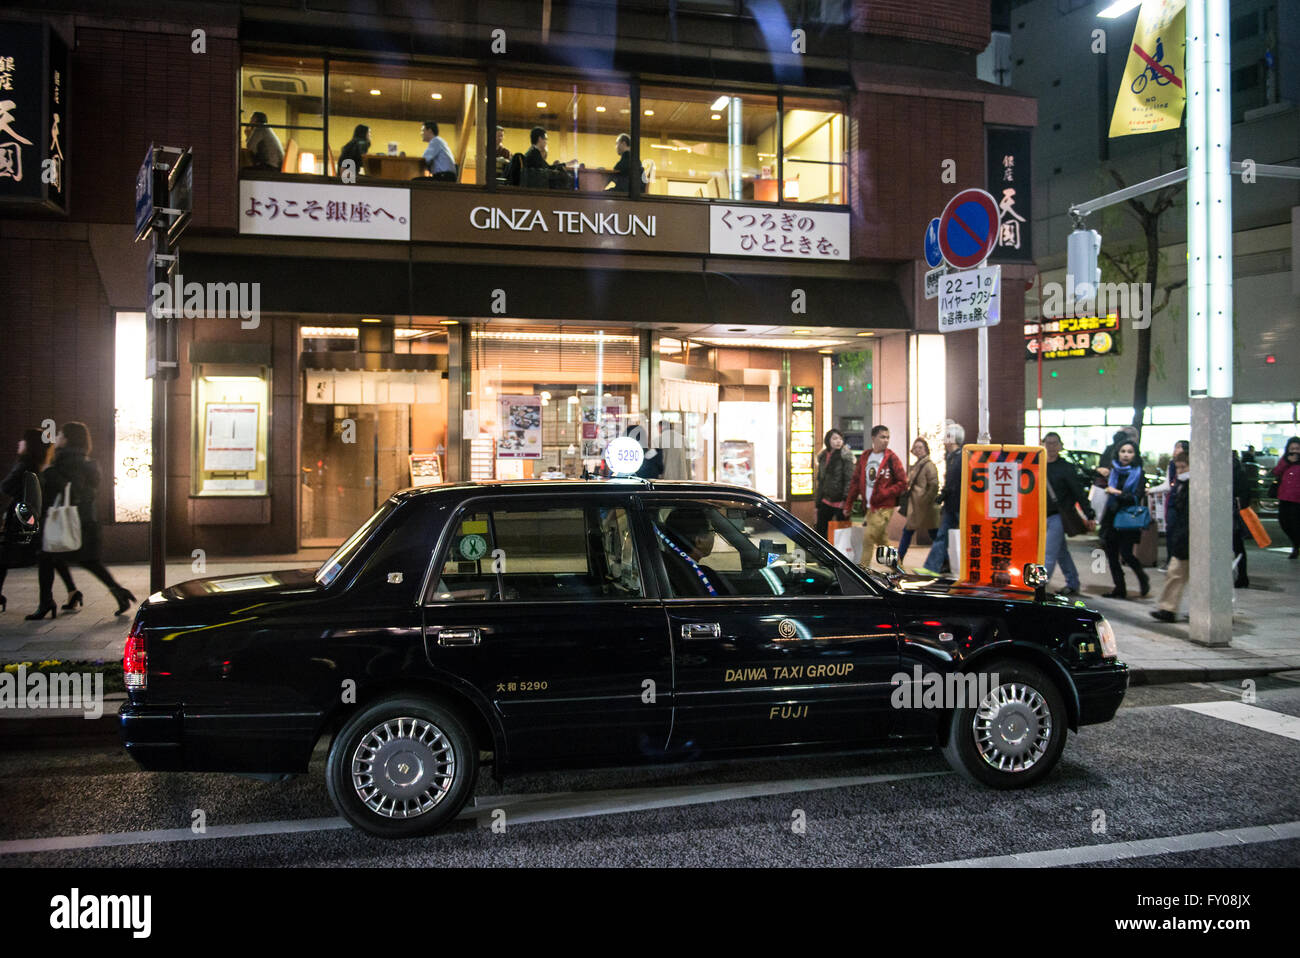 Toyota Crown taxi on Chuo Dori street in Ginza luxury district of Chuo, Tokyo city, Japan - Stock Image